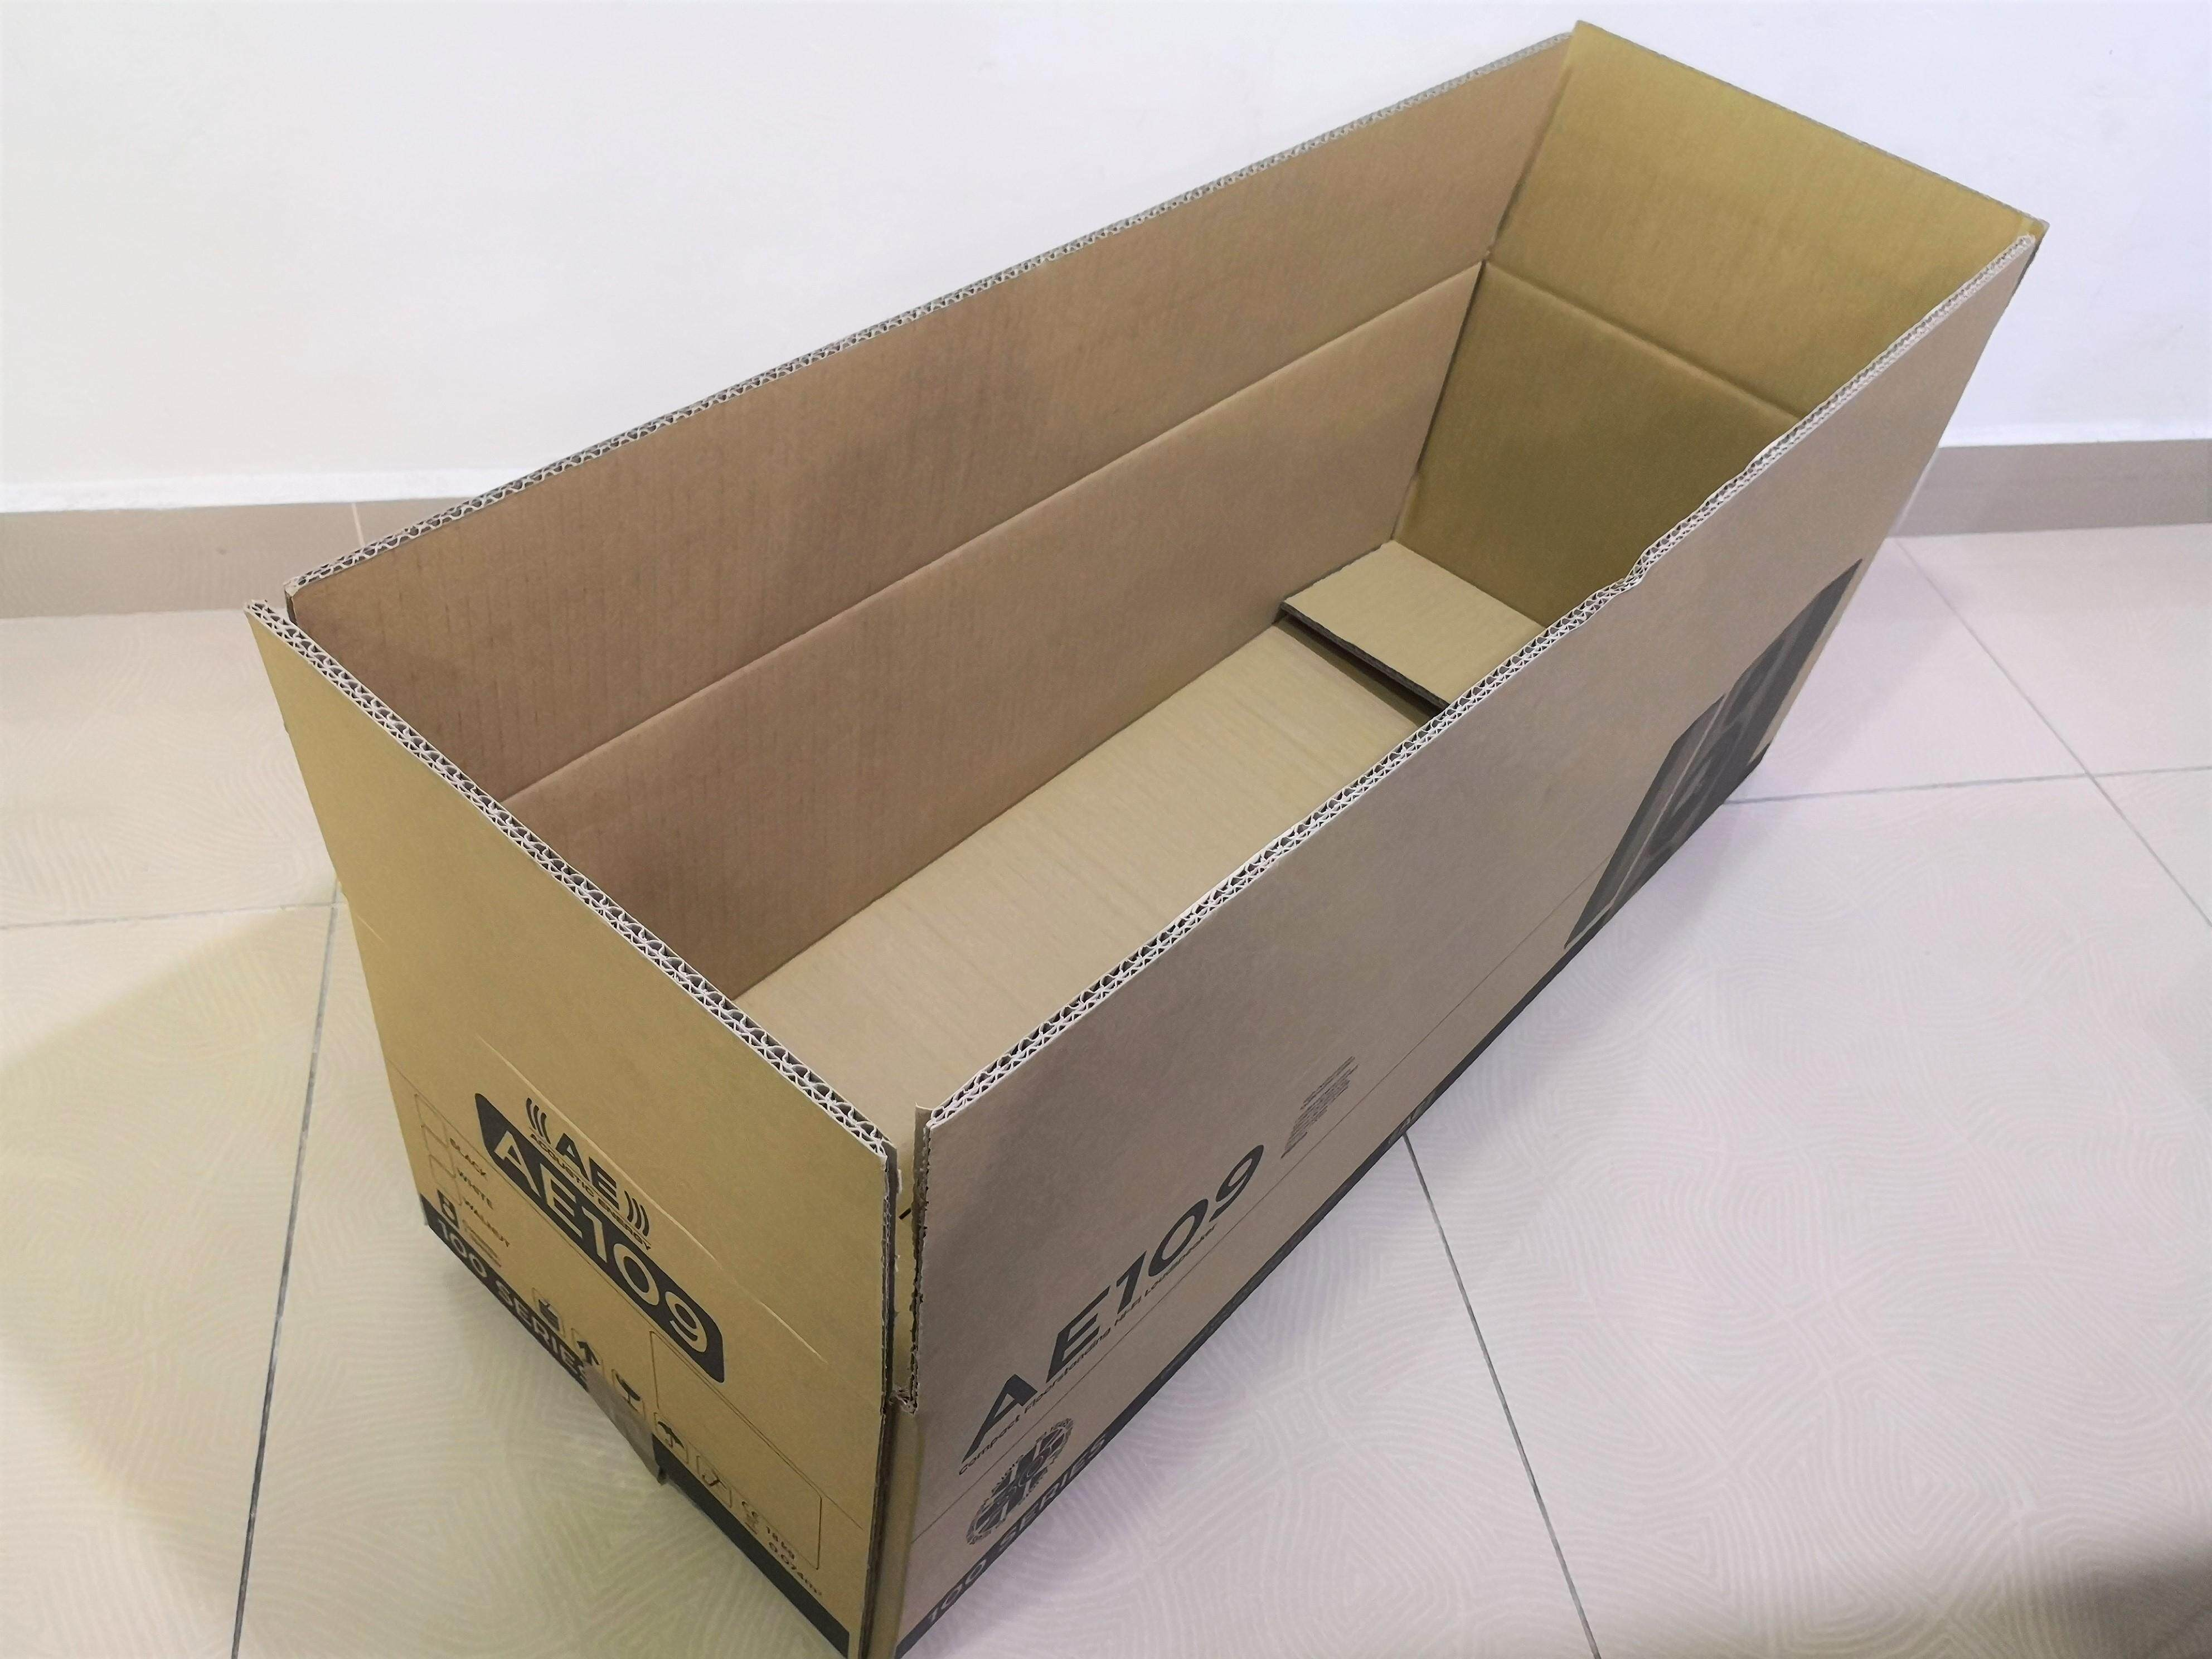 5pcs Printed Carton Boxes (L874 x W320 x H242mm)